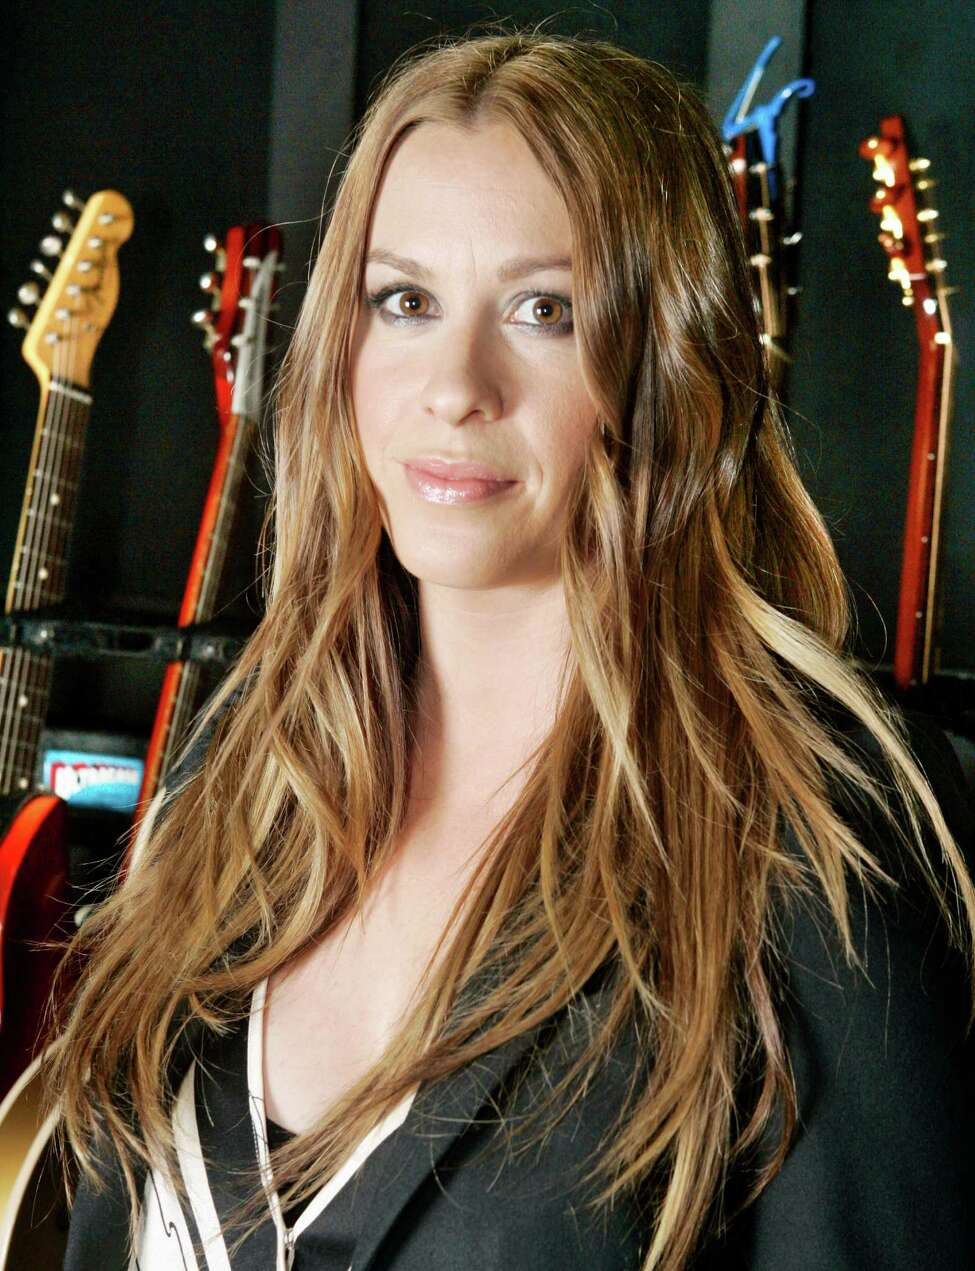 Alanis Morissette, Garbage and Liz Phair are headed to SPAC in 2020. Keep clicking for more concerts and shows coming to the Capital Region soon.